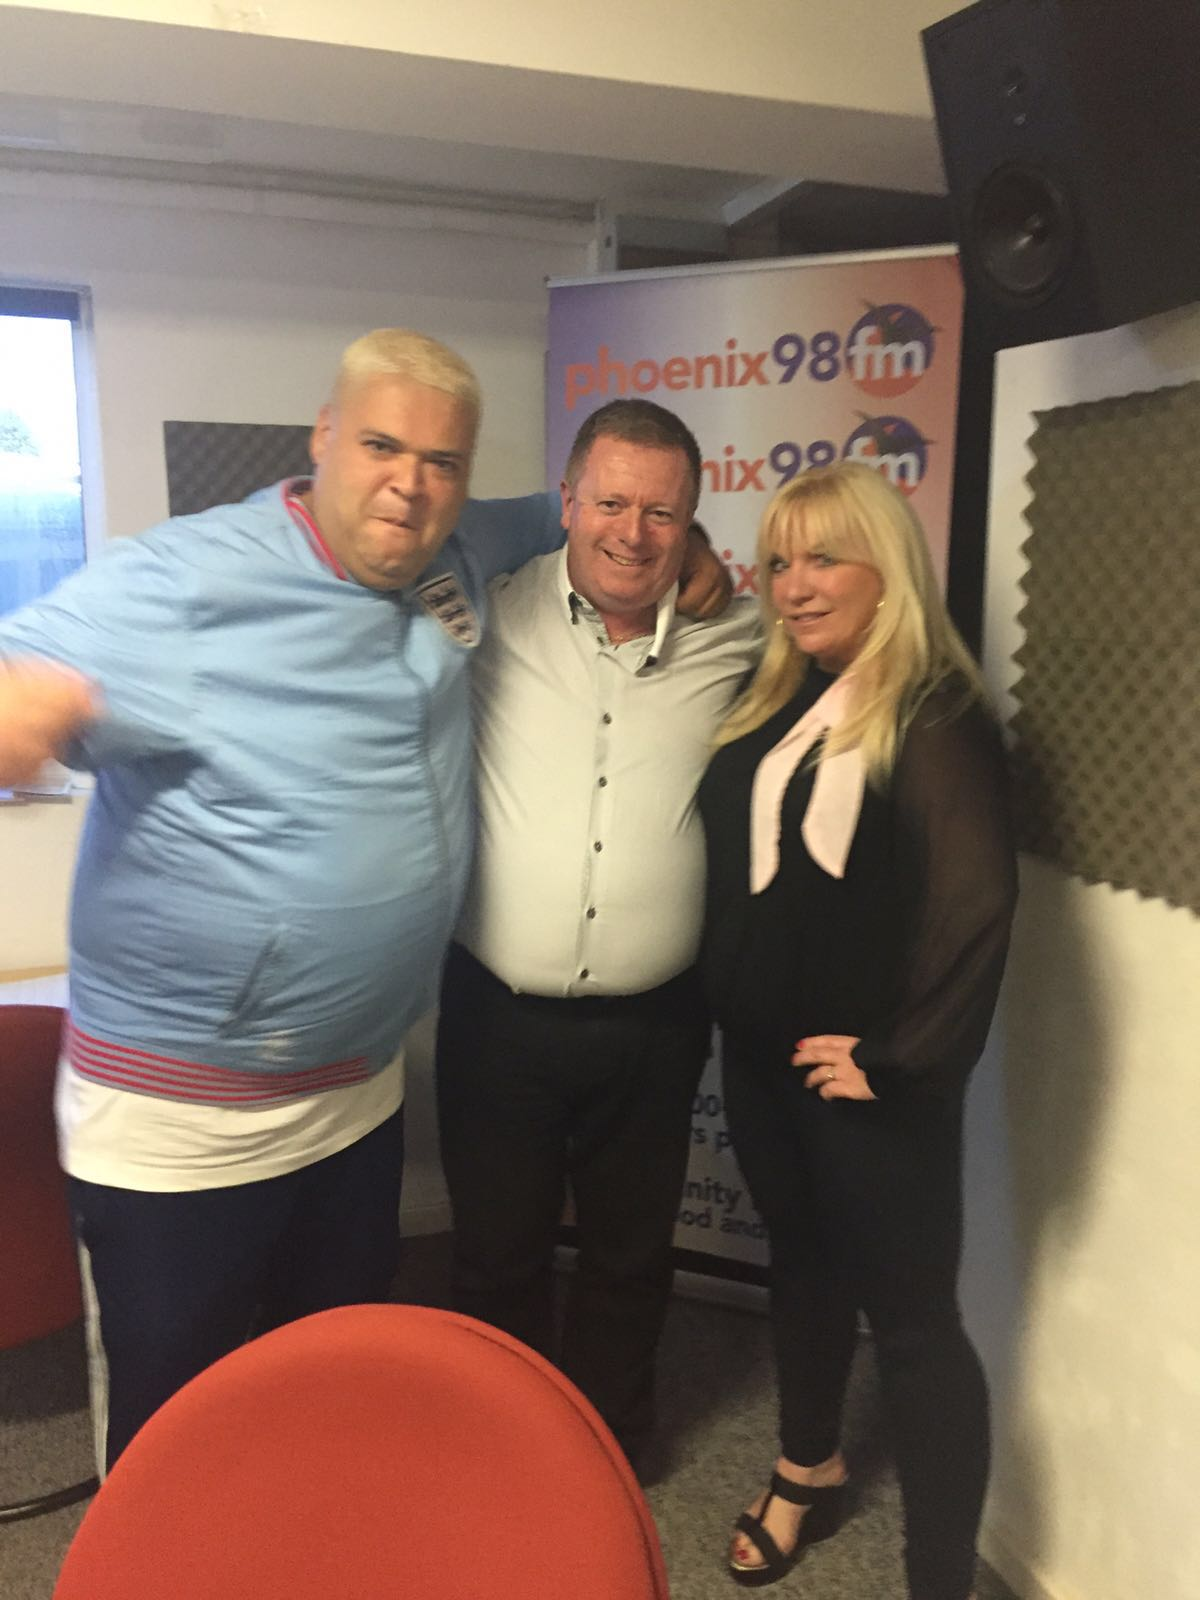 linda lambert and heavy d from storage hunters phoenix fm linda lambert and heavy d from storage